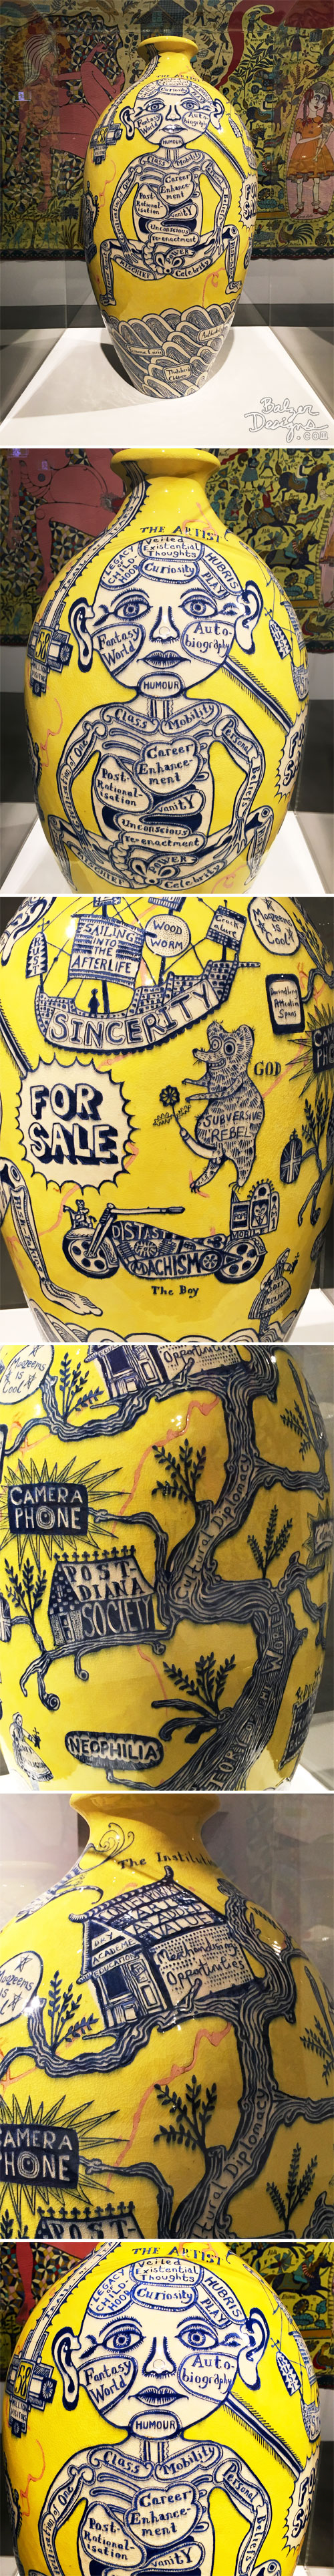 From the Balzer Designs Blog: Grayson Perry Exhibit